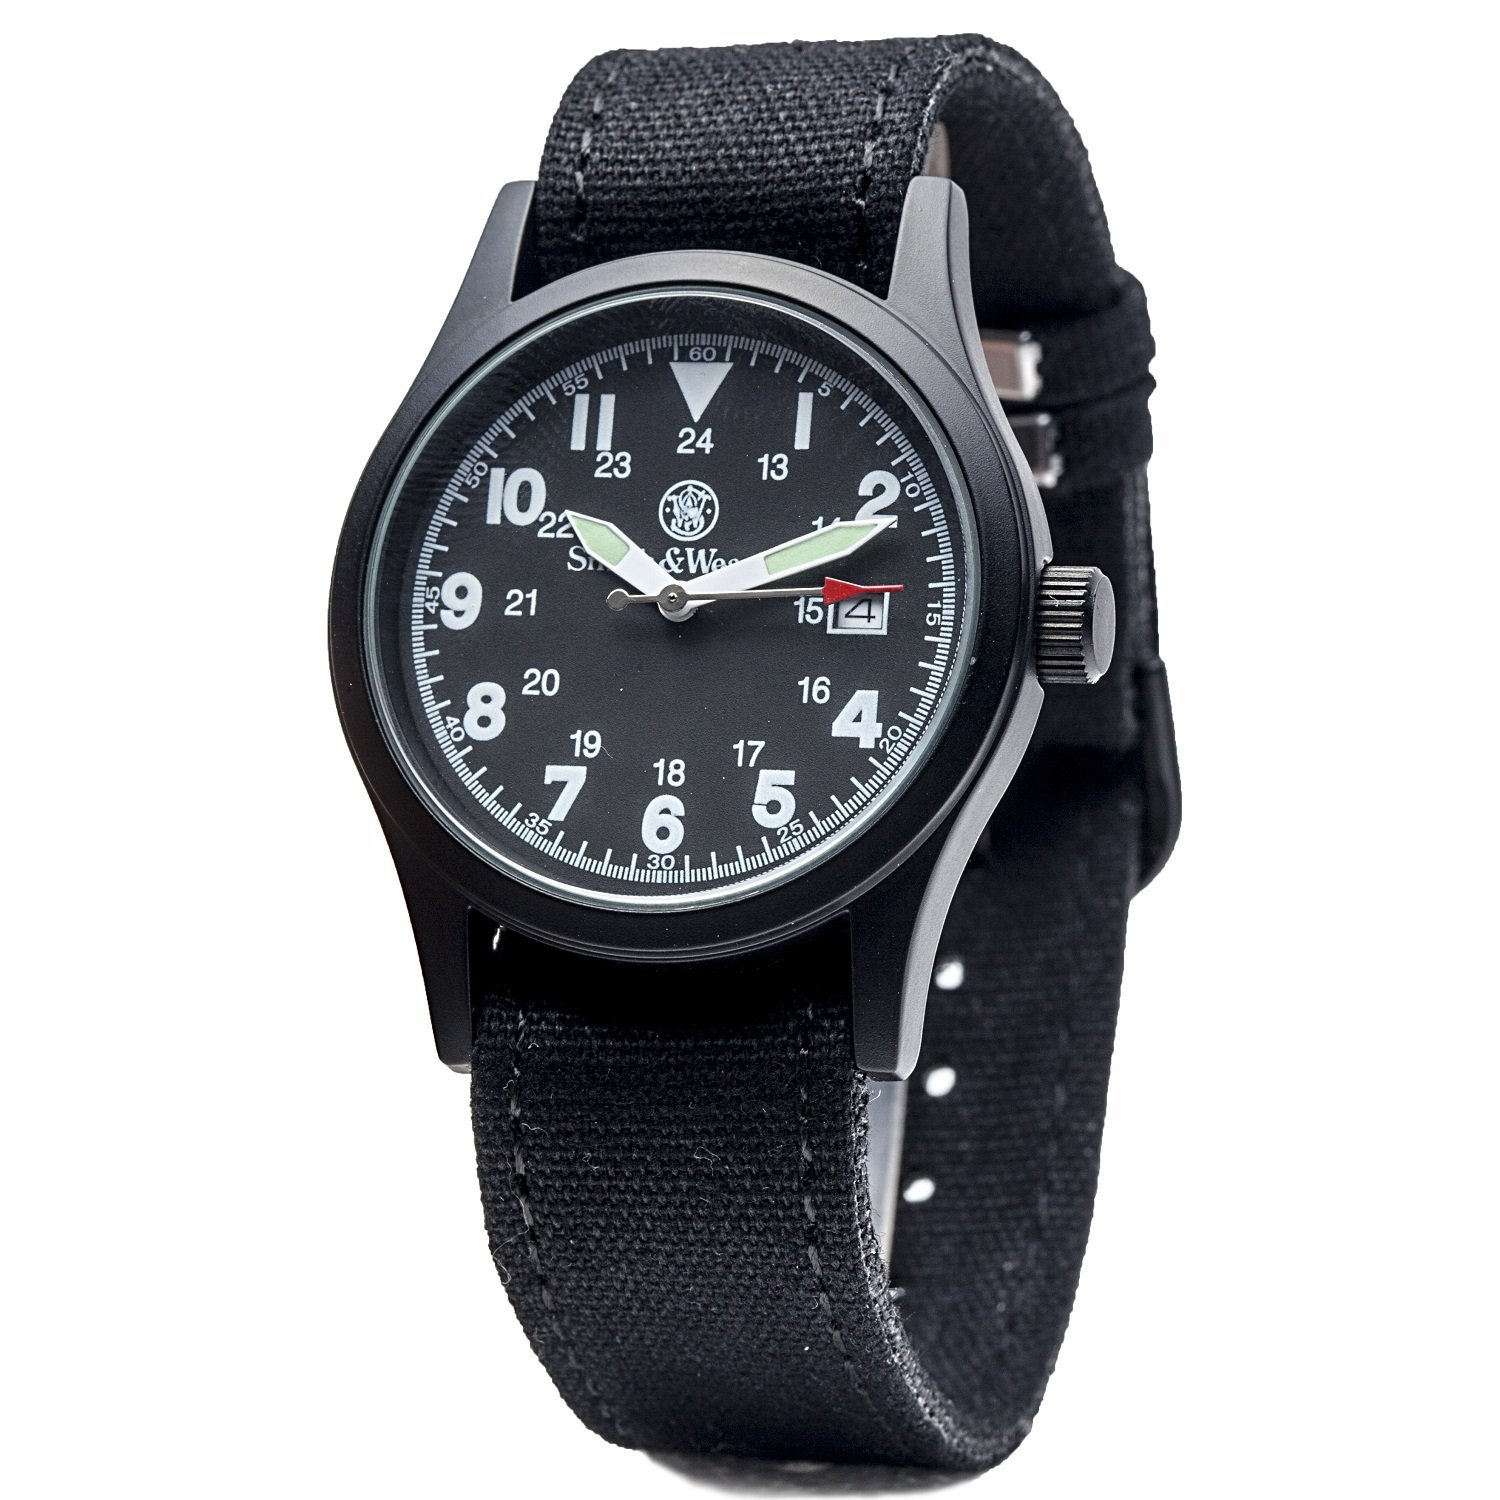 Smith & Wesson SWW-1464-BLK Military Watch with Three Interchangable Canvas Straps